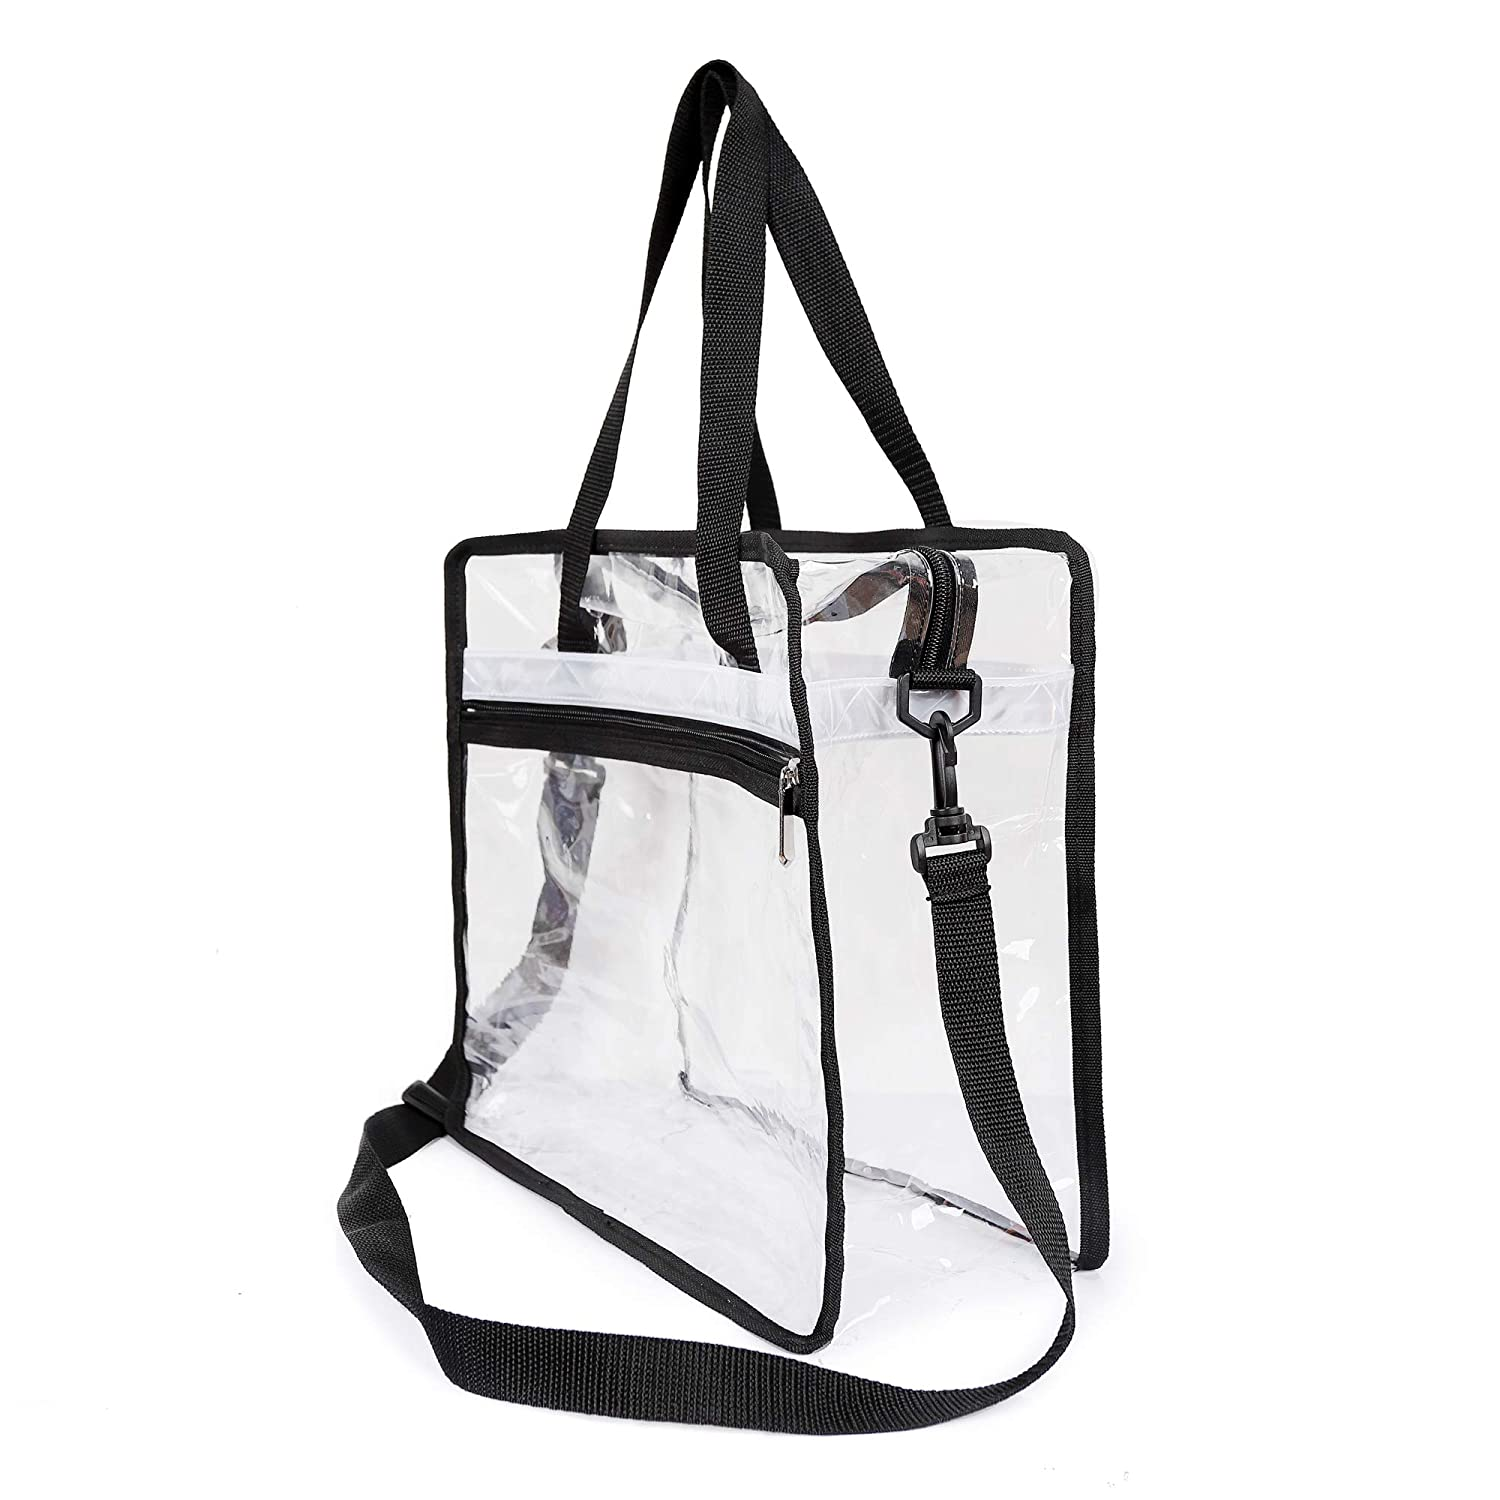 Travel Shopping School Sports Games and Concerts Thirtythree July Handheld Transparent Cross-Body Bag NFL/&PGA Stadium Approved Adjustable Shoulder Strap and Zip Closure for Work